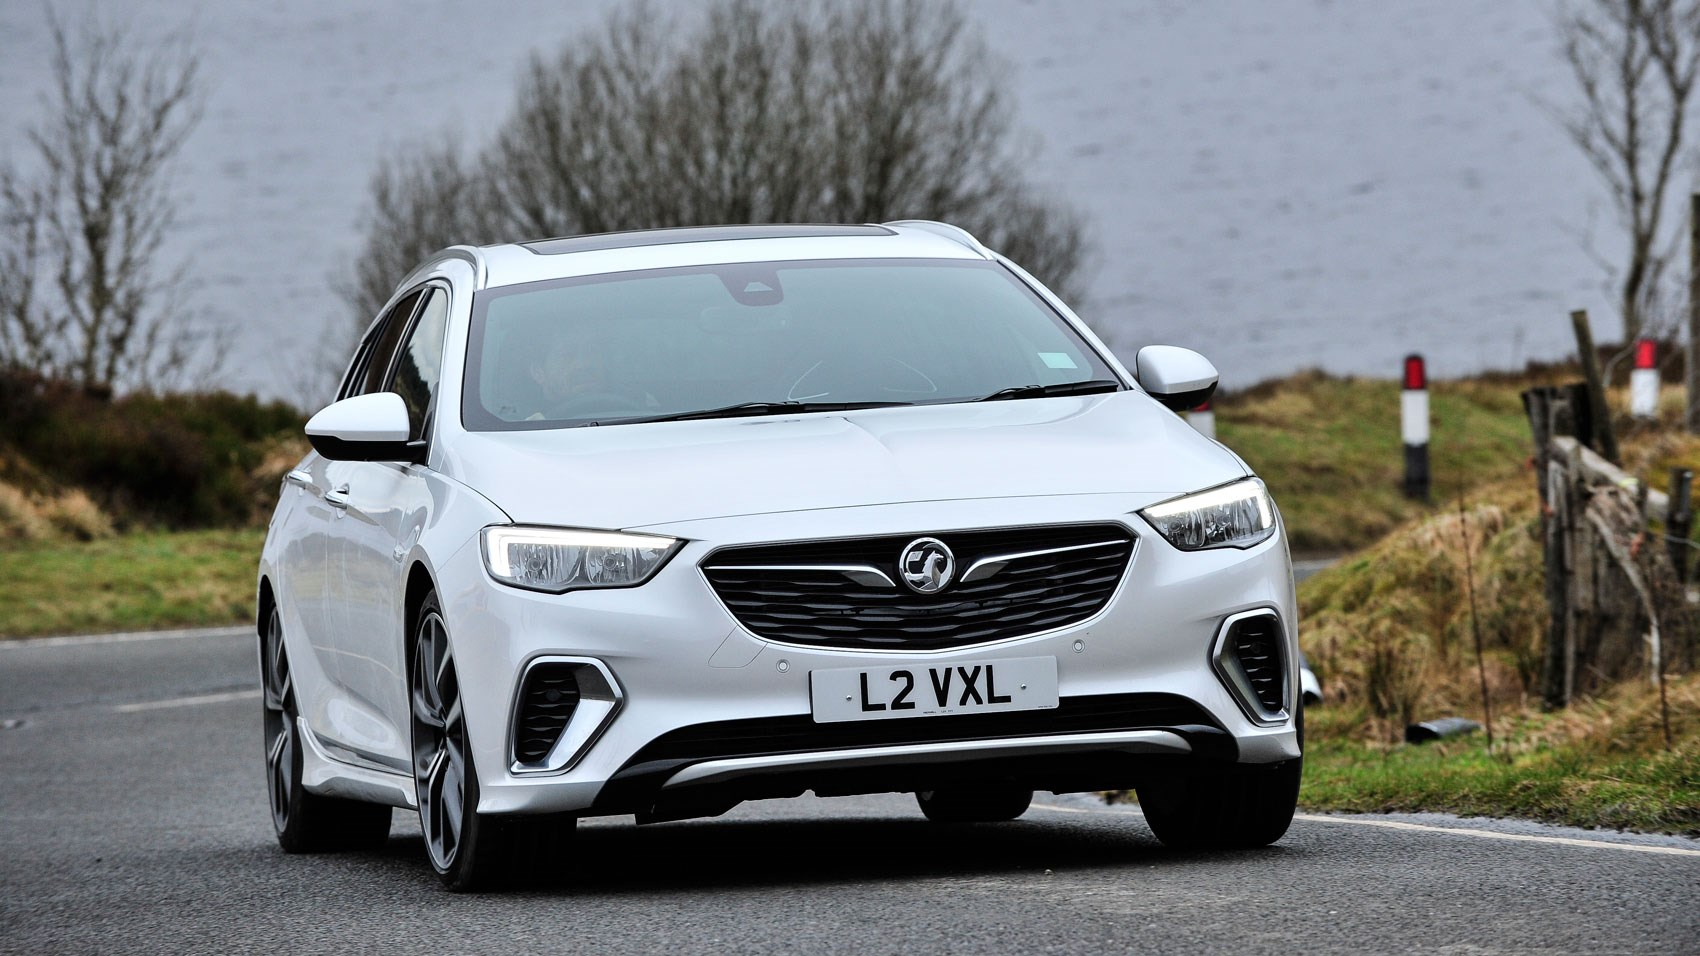 Vauxhall Insignia 2018 Vauxhall Insignia Gsi Sports Tourer Diesel Estate 2018 Review